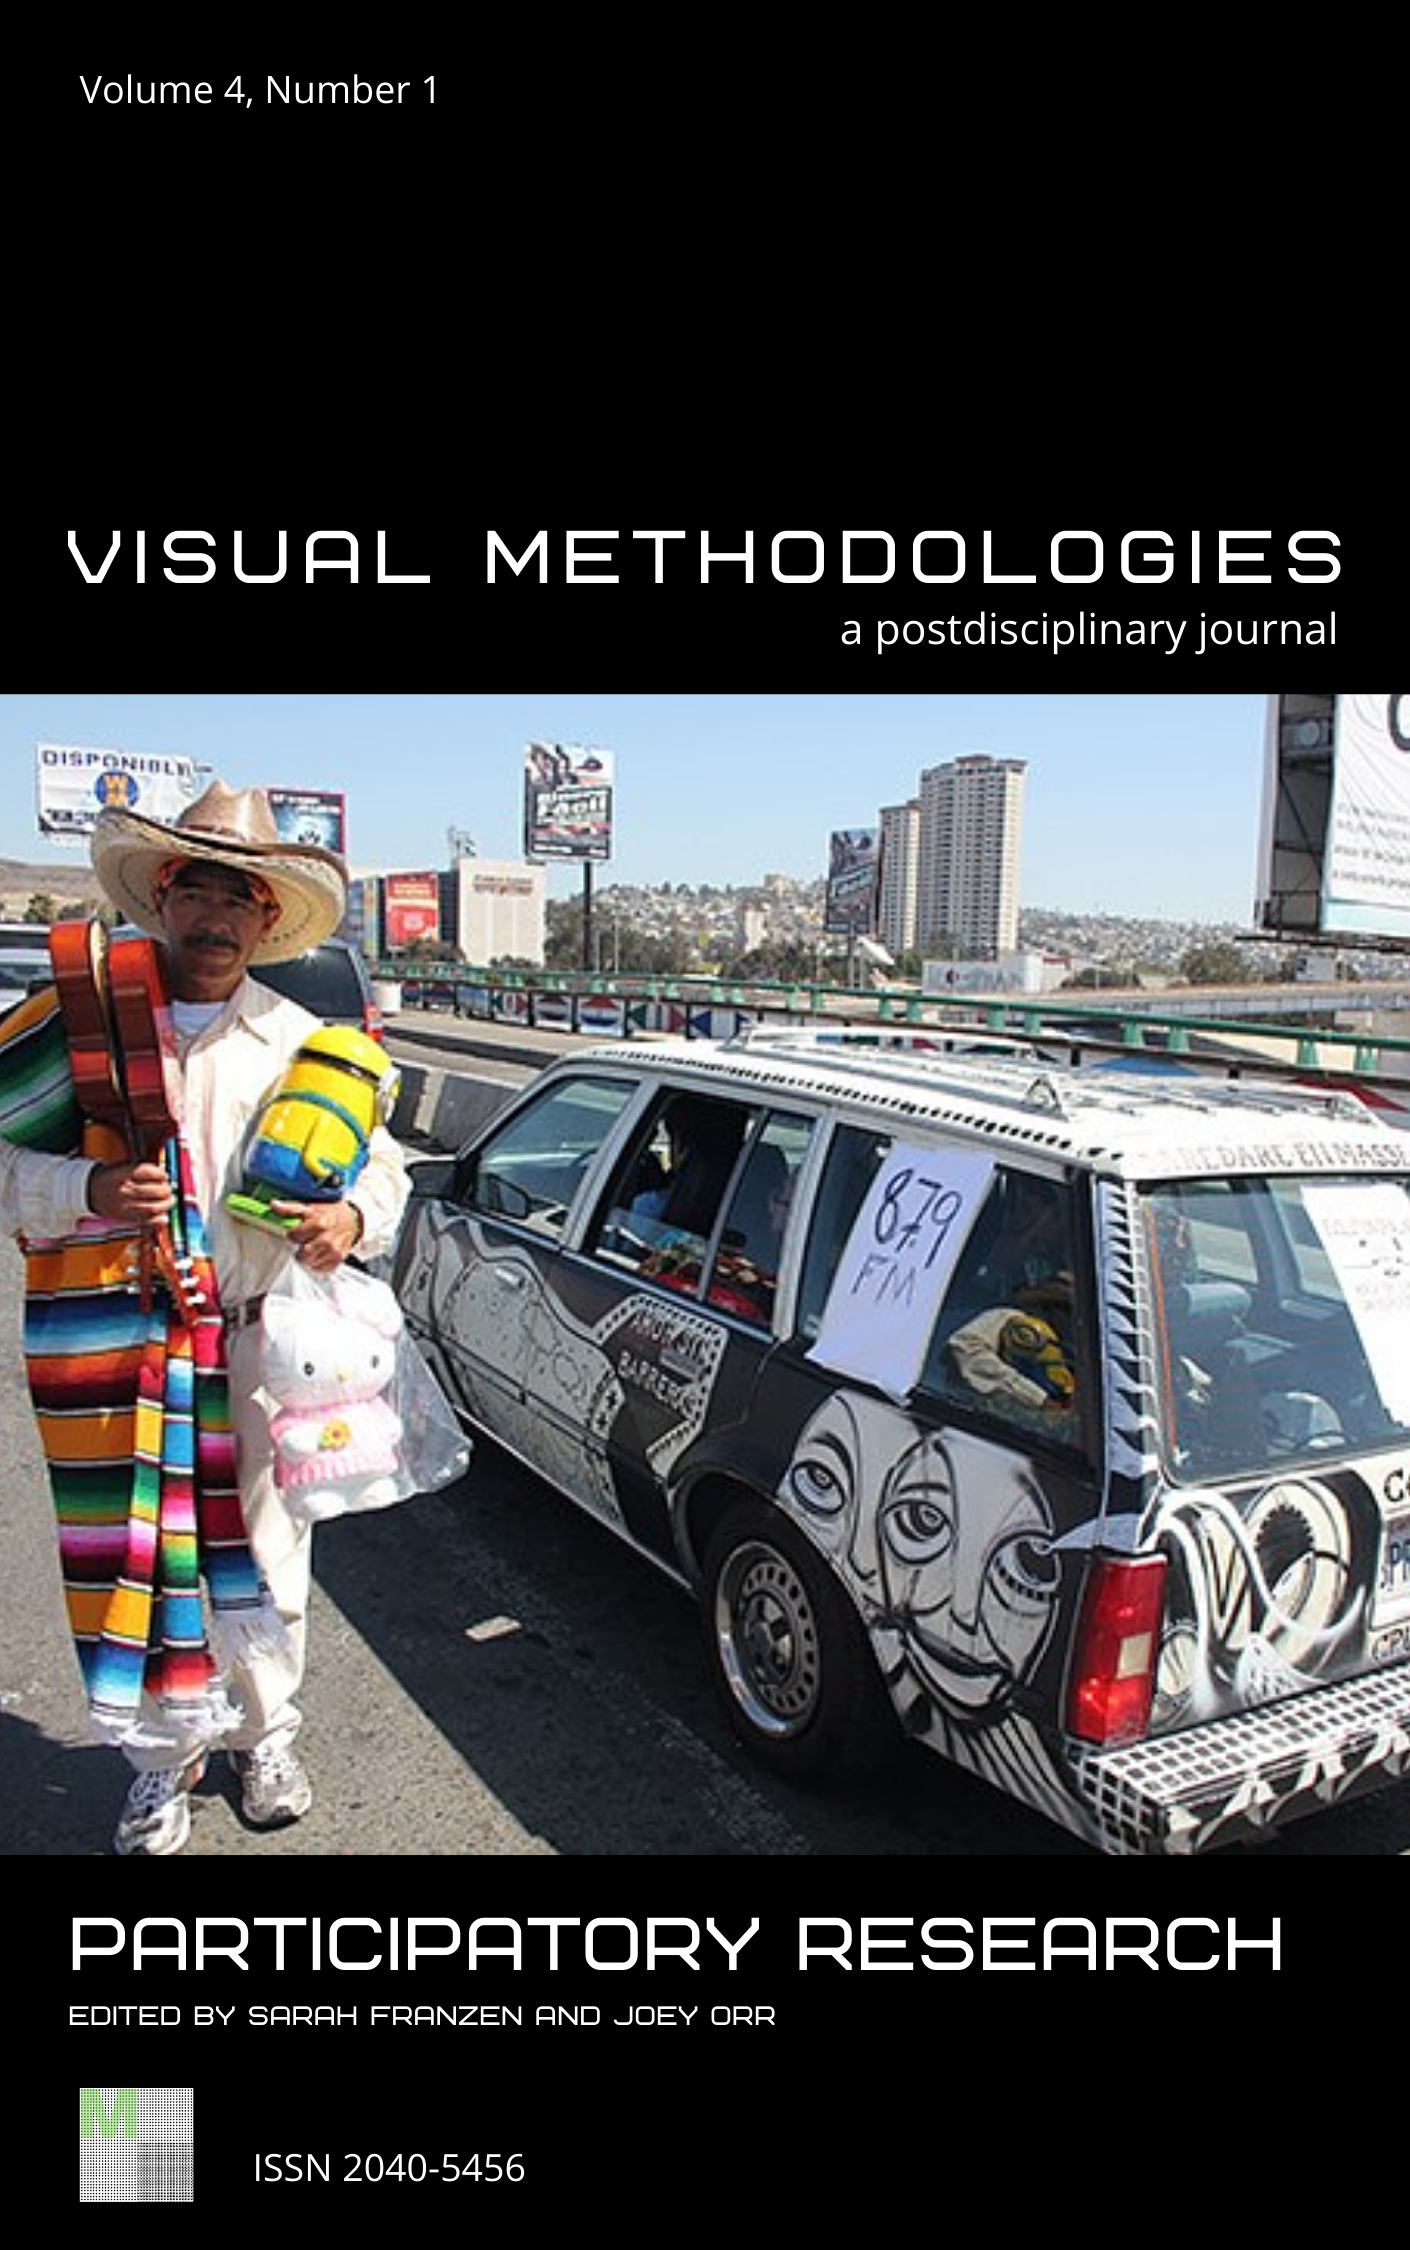 This special issue seeks to examine the role of participation in visual methodologies.